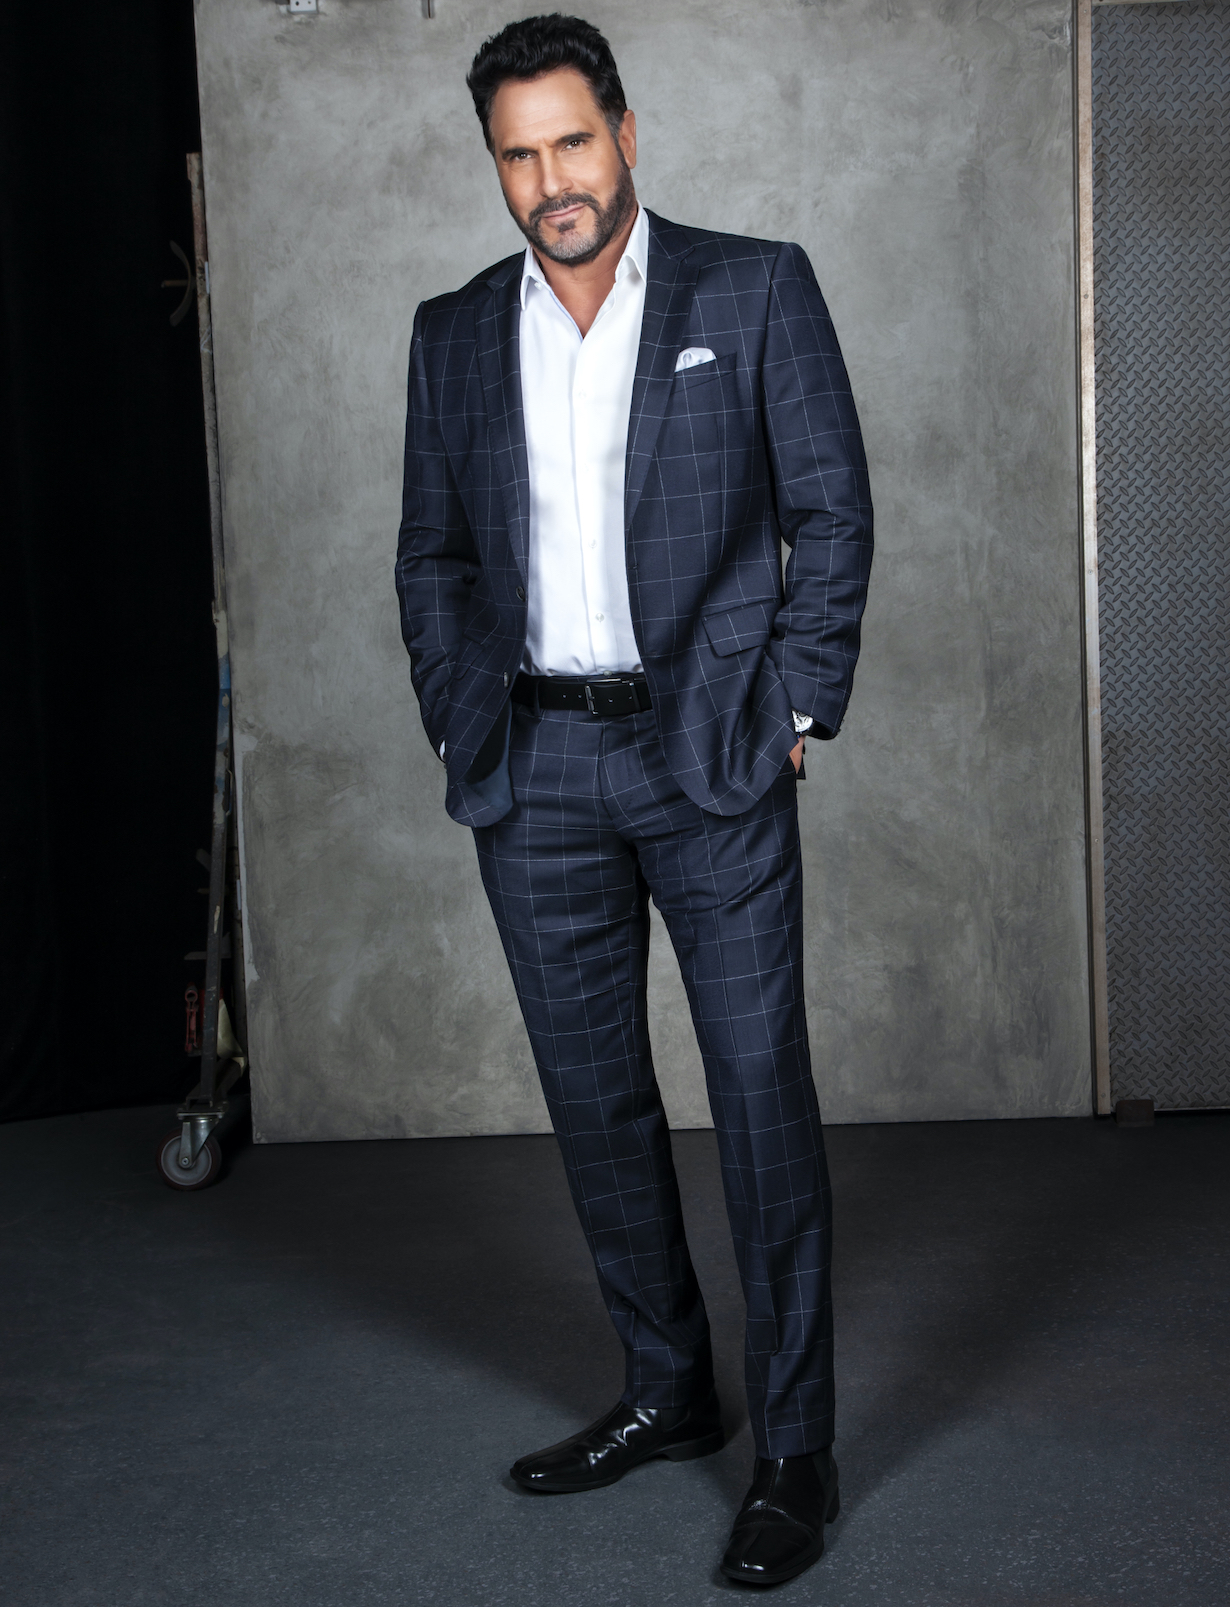 Don Diamont of the CBS series THE BOLD AND THE BEAUTIFUL, Weekdays (1:30-2:00 PM, ET; 12:30-1:00 PM, PT) on the CBS Television Network. Photo: Gilles Toucas/CBS 2020 CBS Broadcasting, Inc. All Rights Reserved.